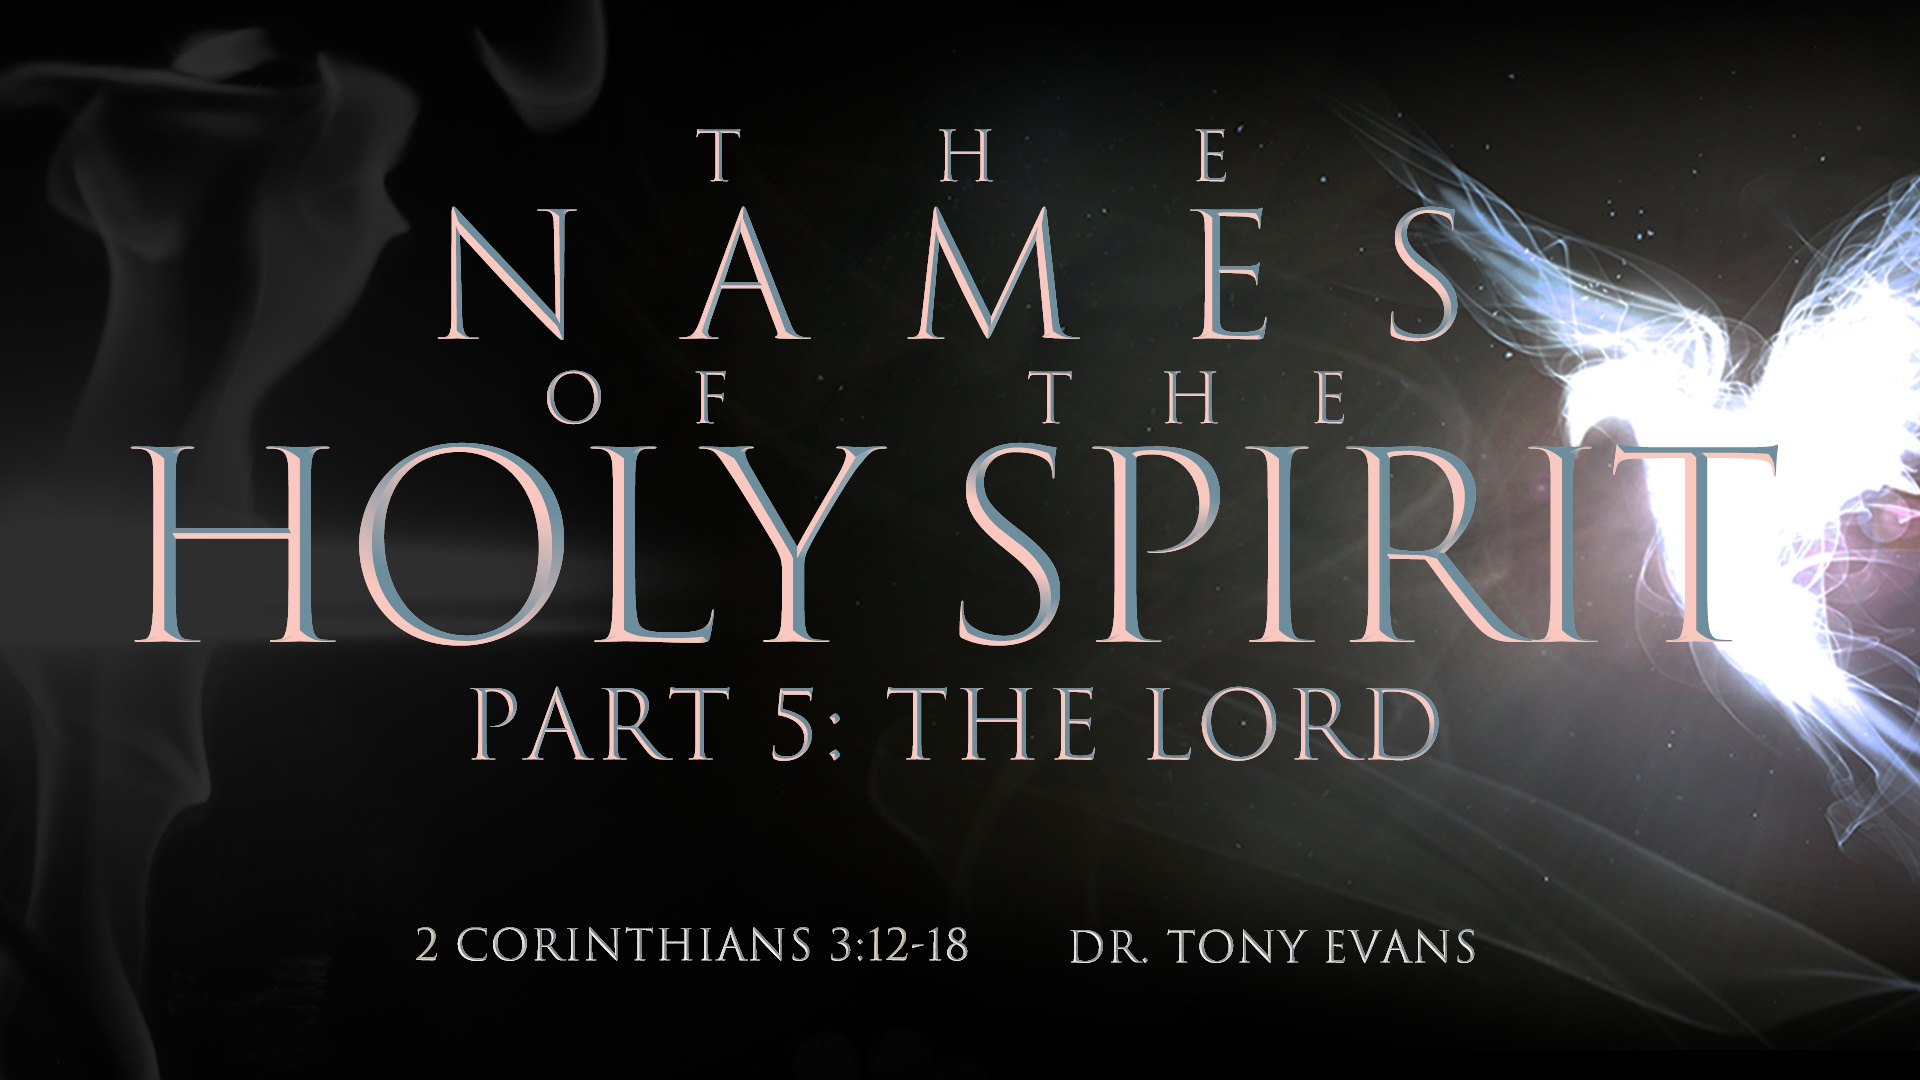 """The Lord"" by Dr. Tony Evans (series: Names of the Holy Spirit)"